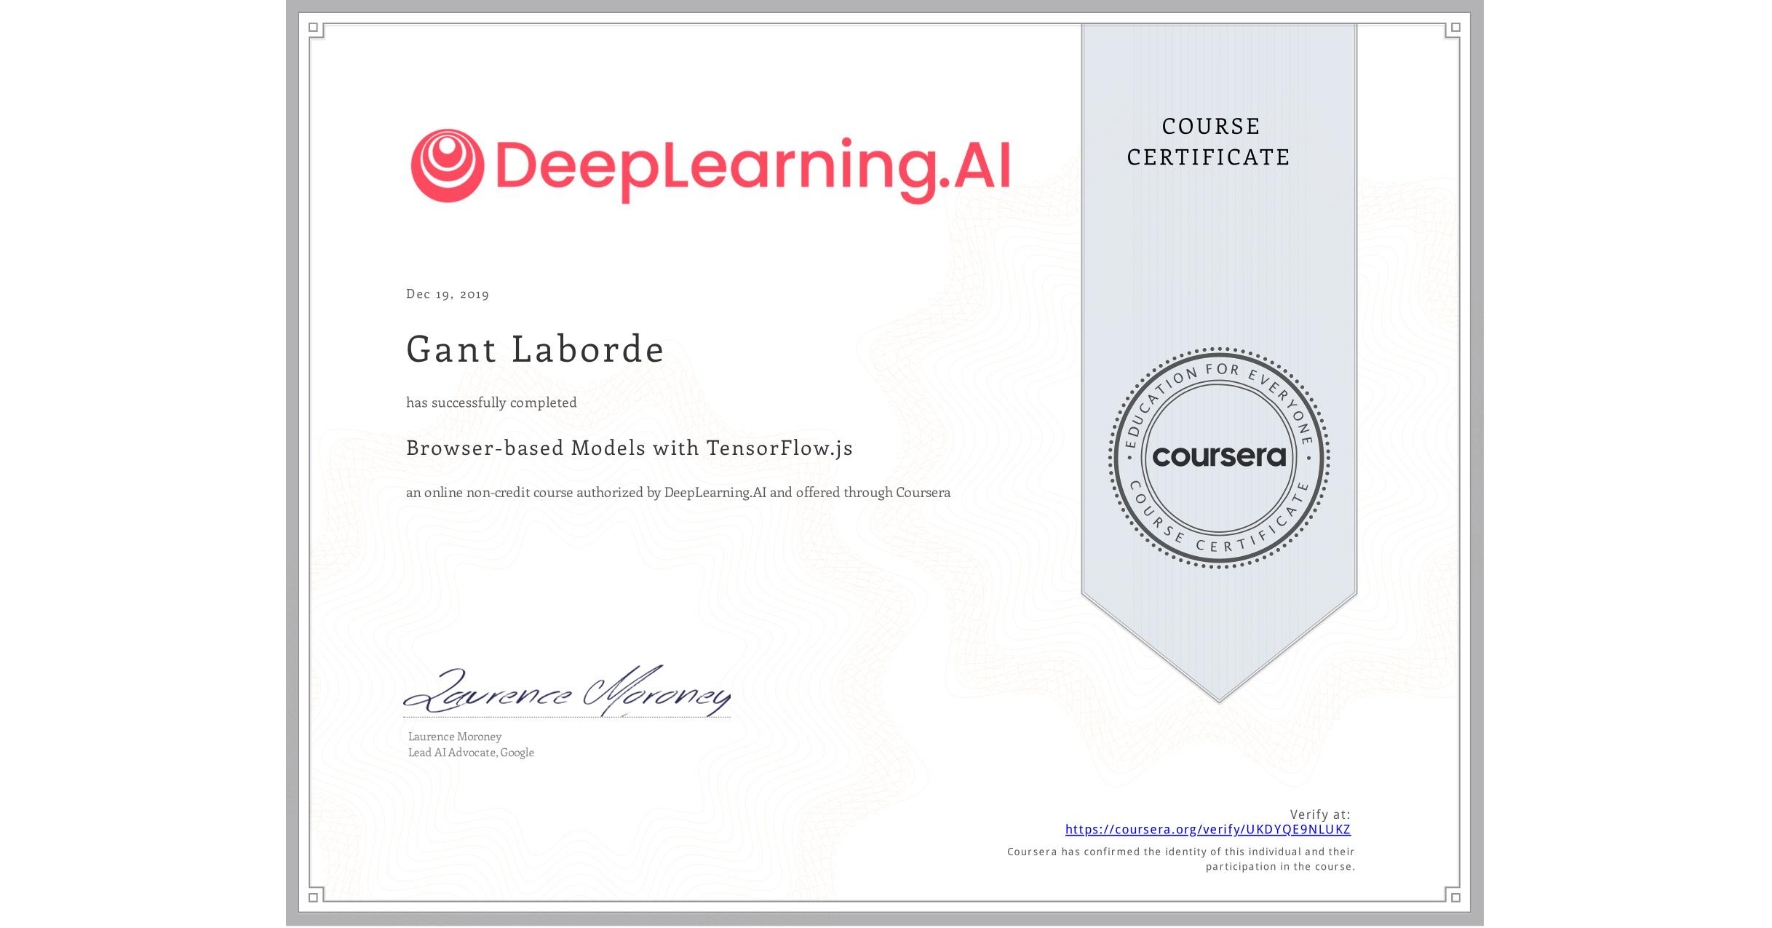 View certificate for Gant Laborde, Browser-based Models with TensorFlow.js, an online non-credit course authorized by DeepLearning.AI and offered through Coursera